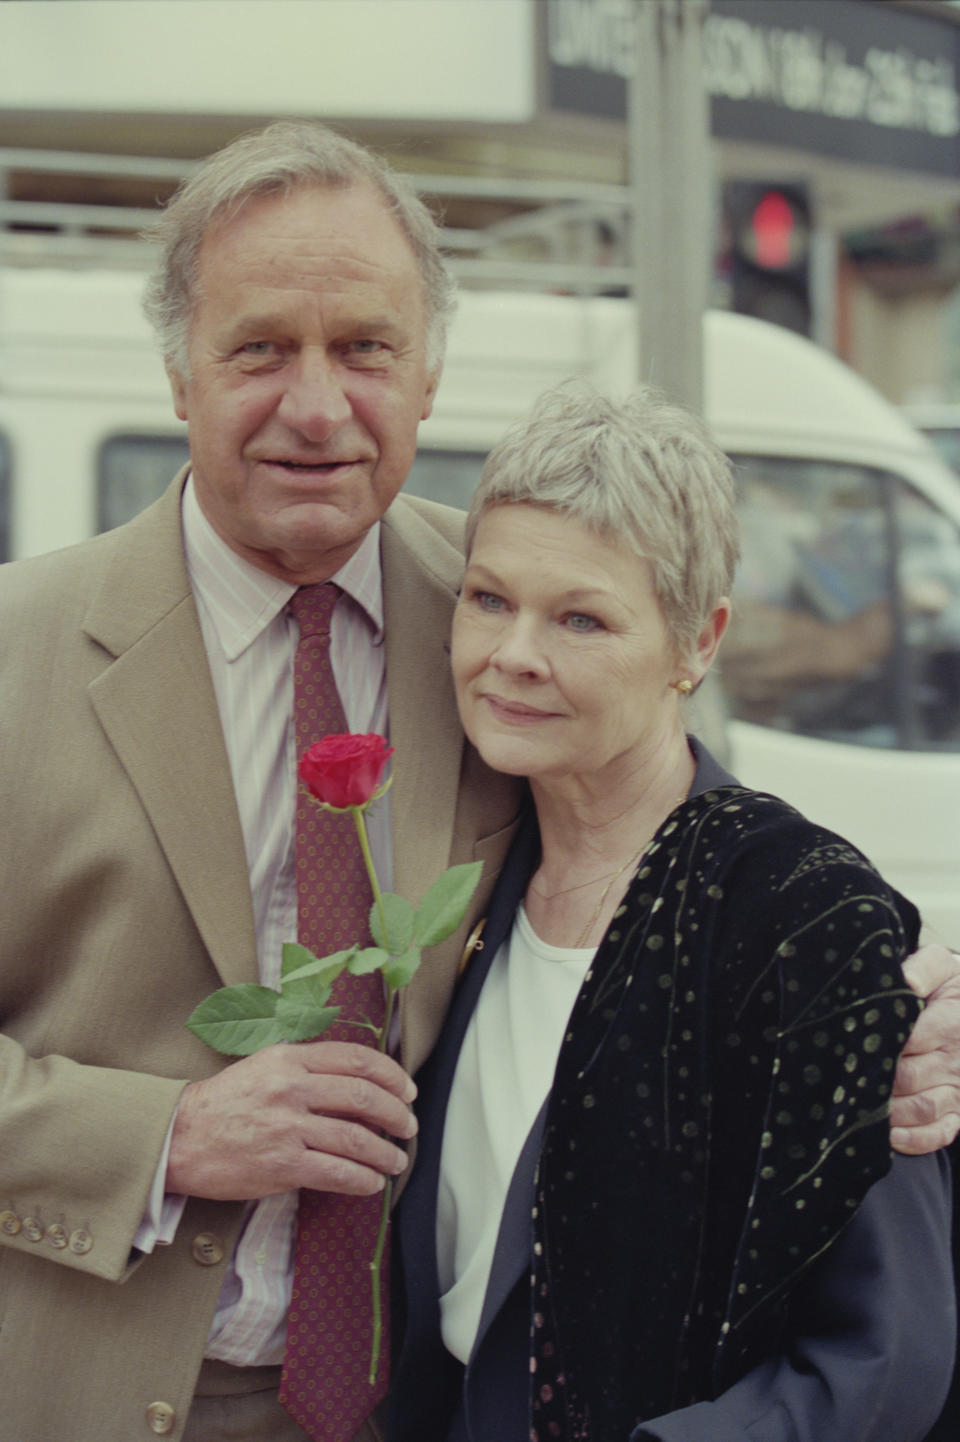 Geoffrey Palmer and Judi Dench attend a photocall to launch the new series of the BBC Television sitcom 'As Time Goes By' in London in February 1995. (Photo by Larry Ellis Collection/Getty Images)